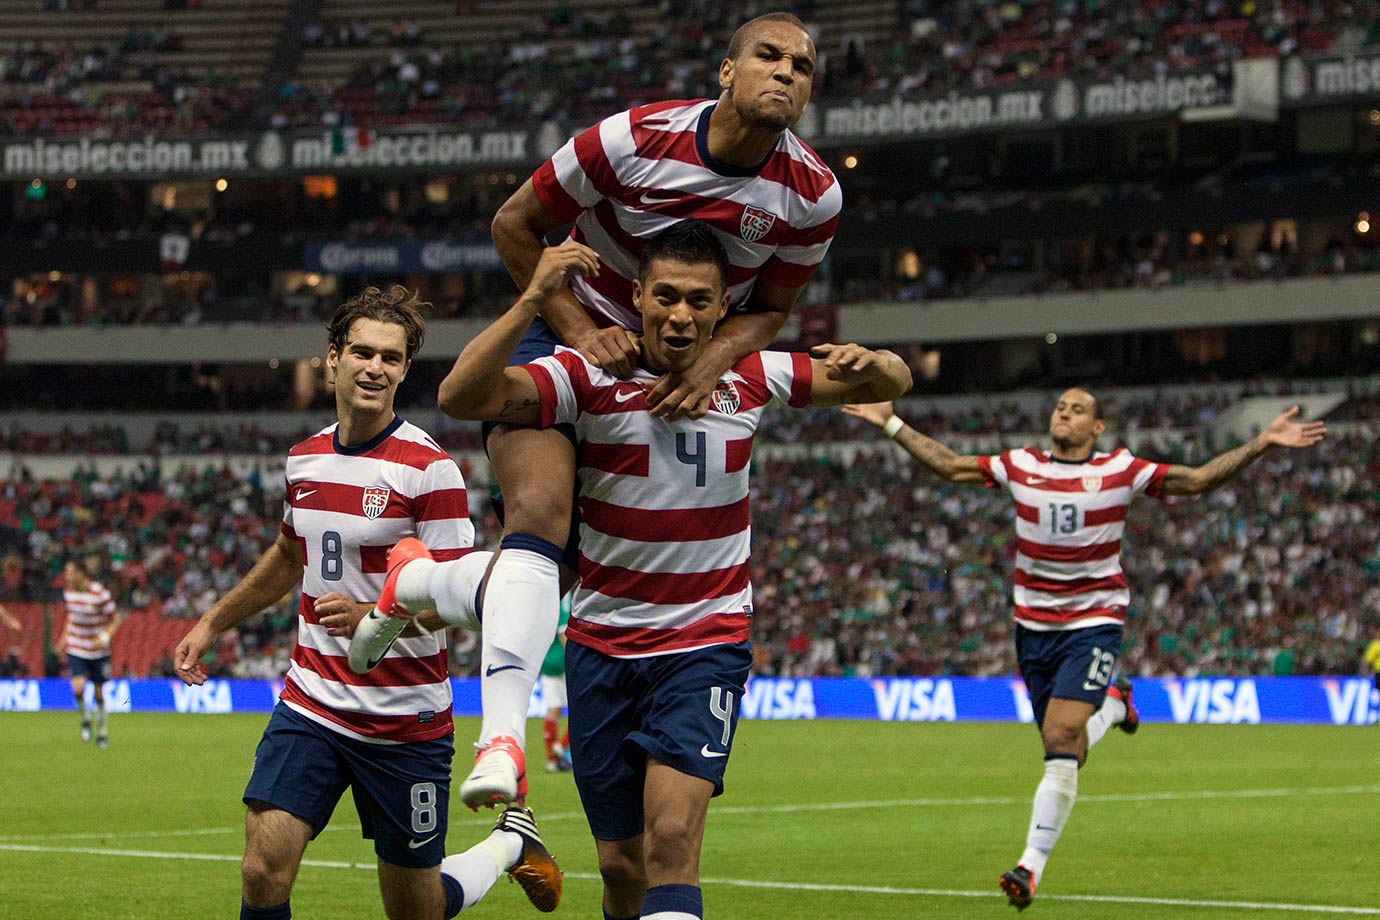 It took 25 attempts, but after this friendly, the United States could finally say that it had won at Mexico City's Azteca Stadium. Despite being outplayed for most of the match, the U.S. won thanks to an 80th-minute goal from Michael Orozco Fiscal — the first international goal of his career.